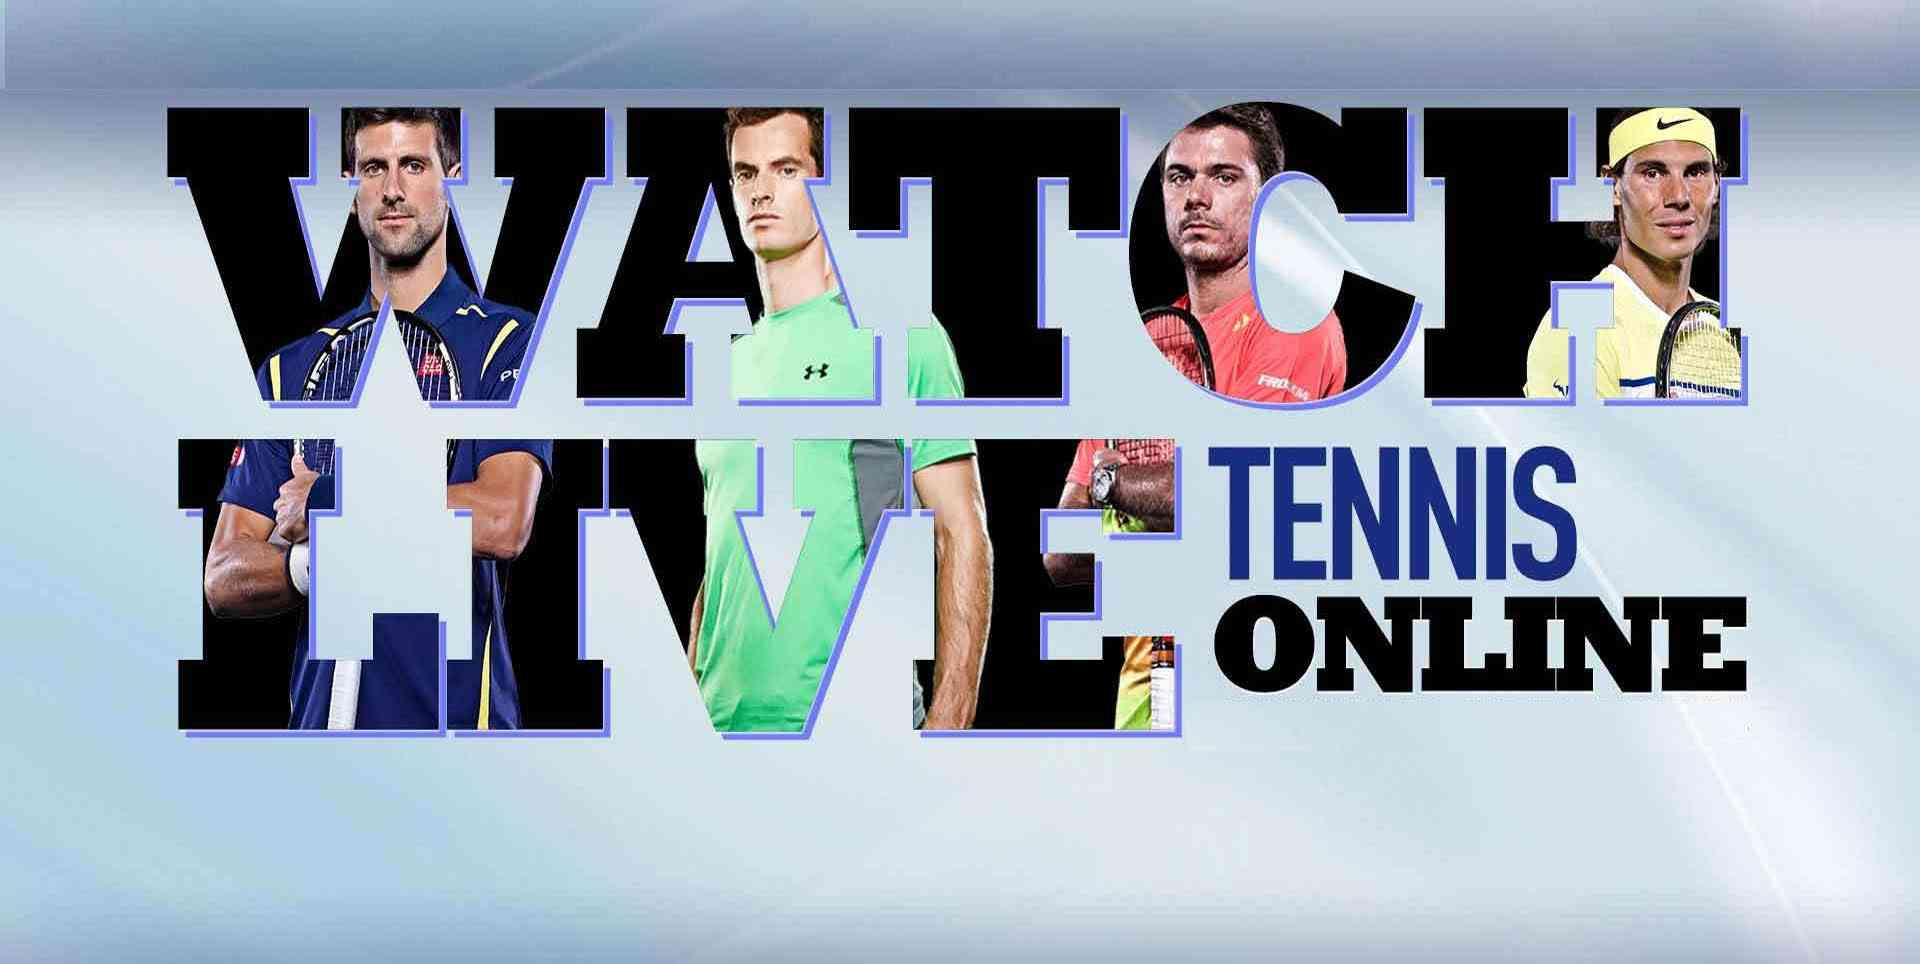 Watch 3rd Round A. Ivanovic vs S. Lisicki Online